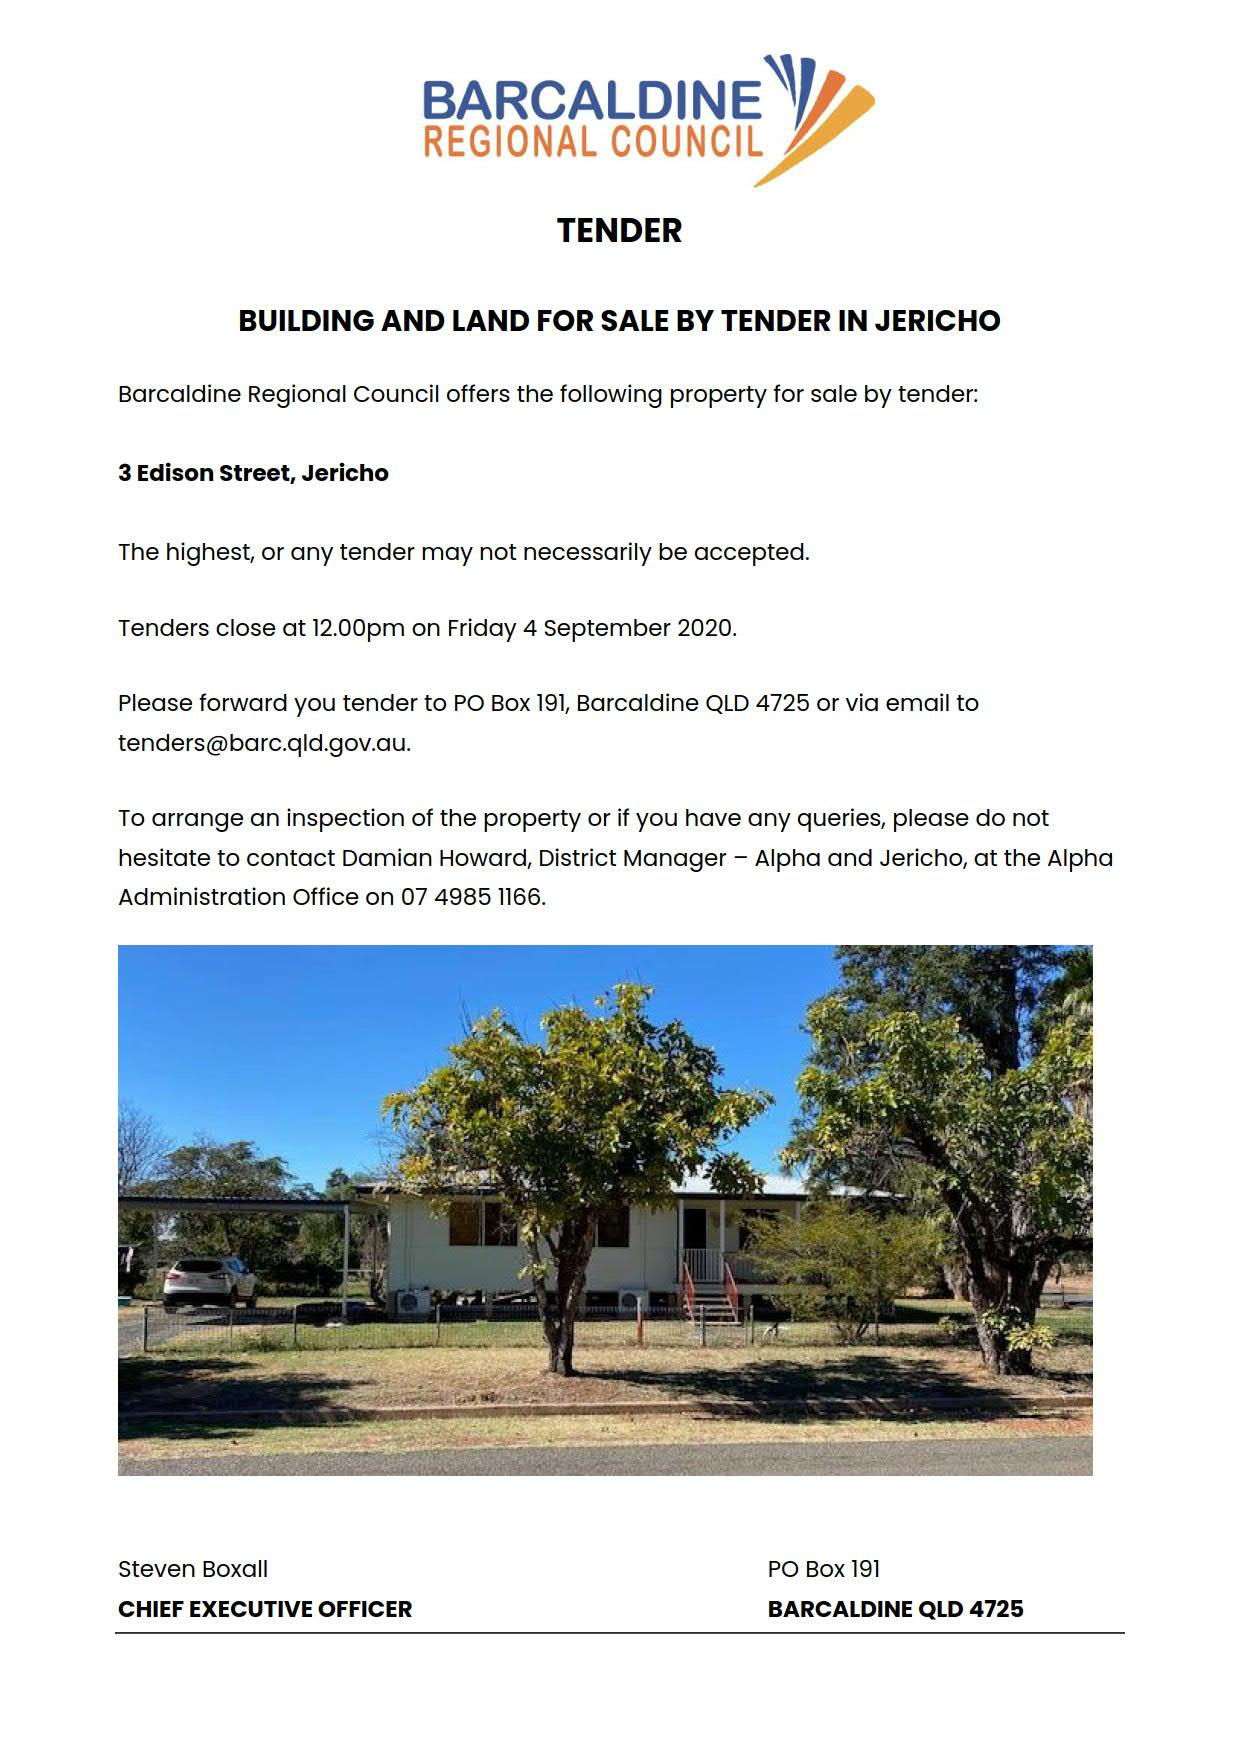 Tender notice for 3 Edison Street, Jericho